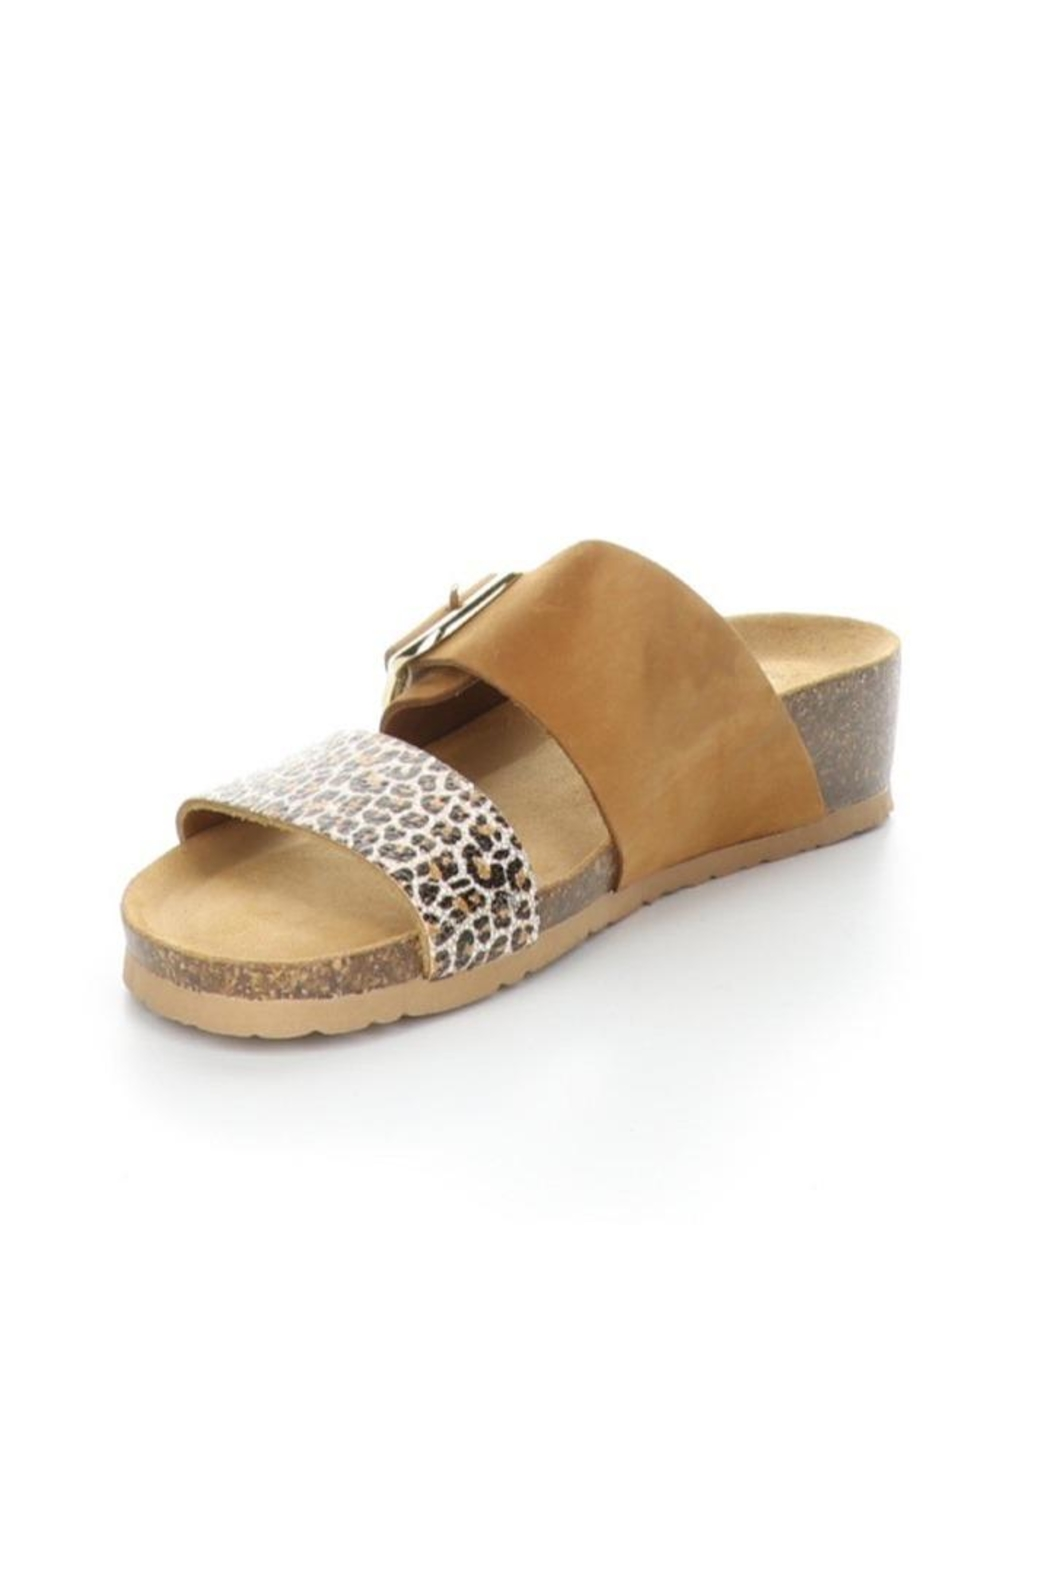 Bos & Co. Lapo Sandal In Brandy / Angelica - Side Cropped Image